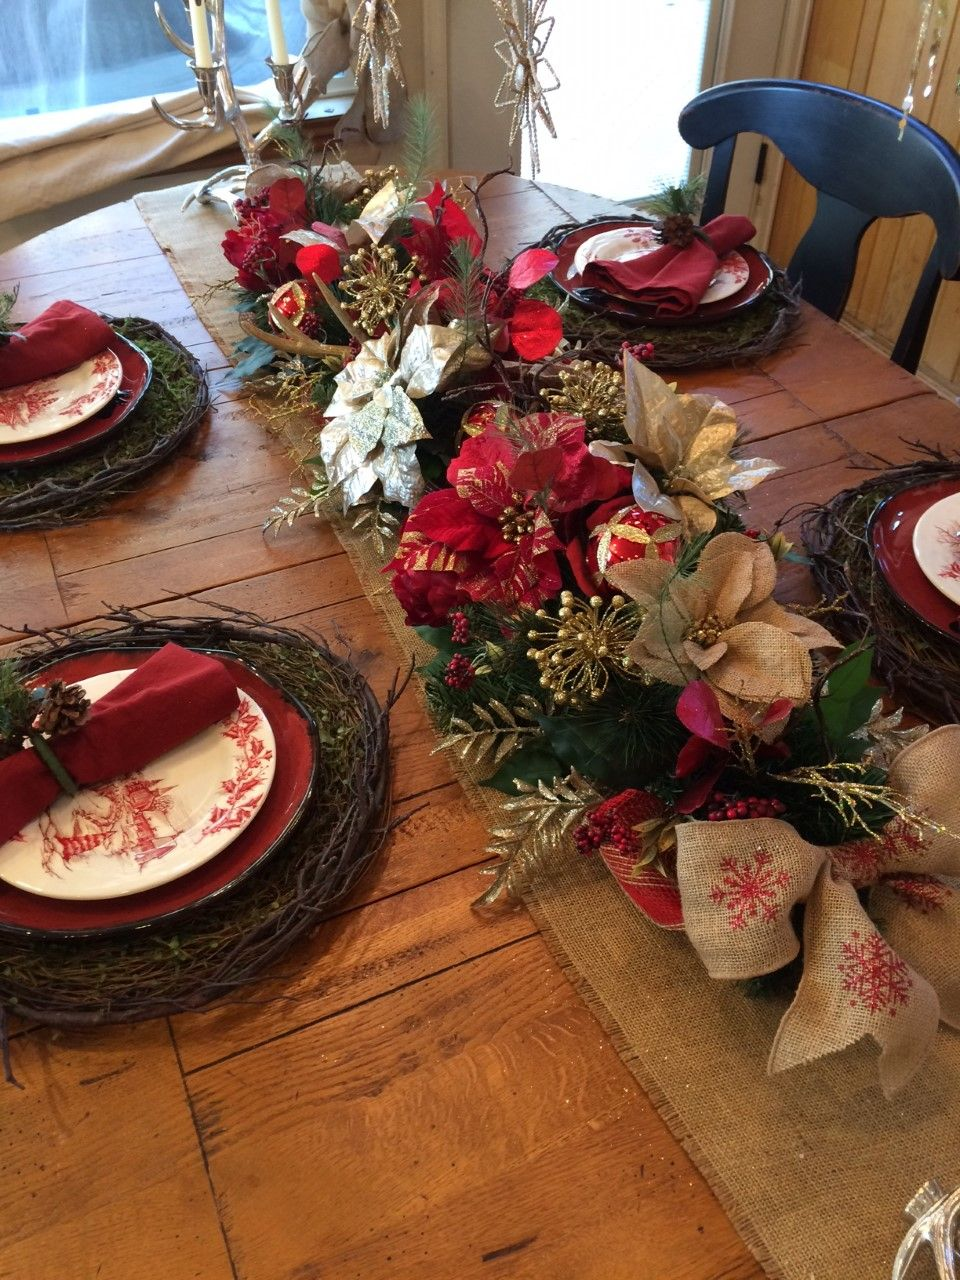 Christmas 2018 Lush 50 Poinsettia Table Garland In Champagne Red Gold Silver And Burlap Red Christmas Wreath Christmas Centerpieces Christmas Tablescapes